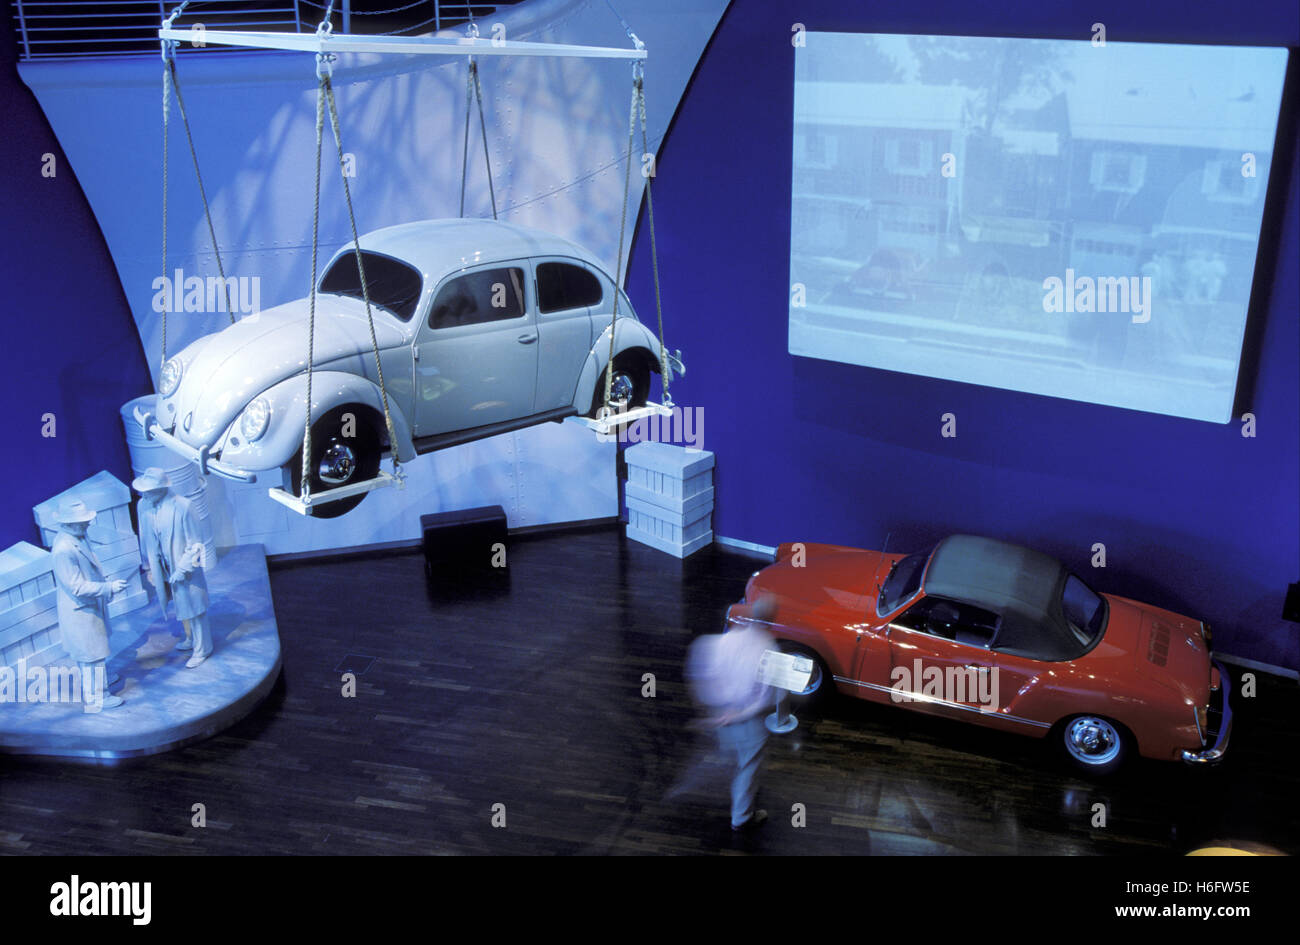 Germany, Wolfsburg, the Volkswagen Autostadt, old VW Beetle and a Karmann Ghia convertible. - Stock Image